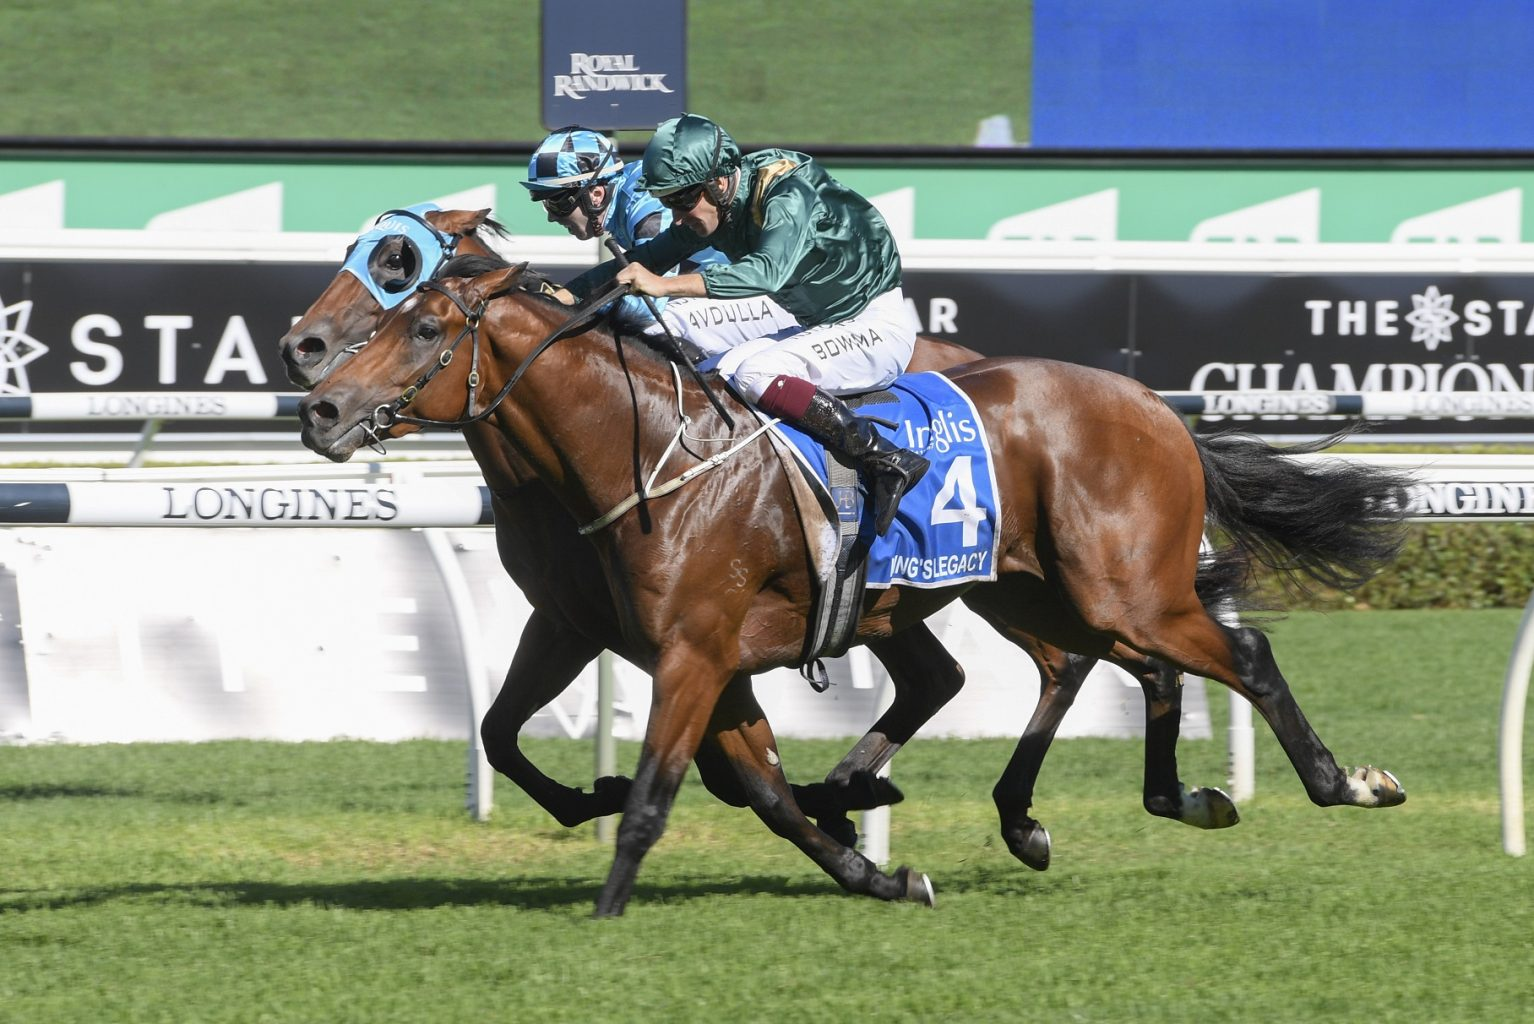 2020 Inglis Sires' Results: King's Legacy Wins on Way to Champagne Stakes